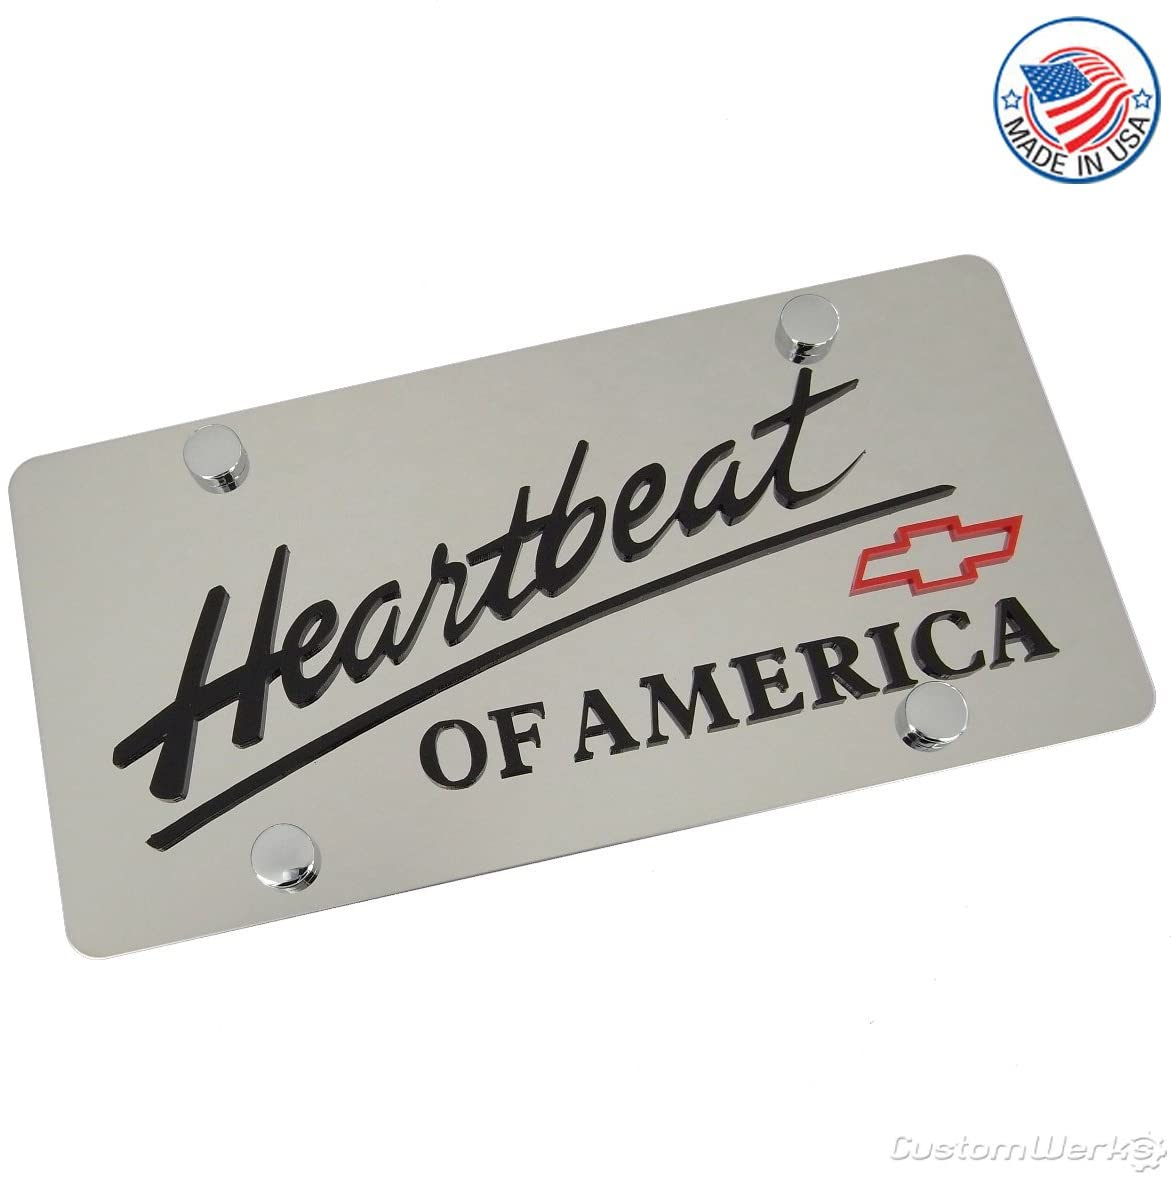 Chevy Heartbeat Of America Words & Red Bowtie Logo & Name On Polished License Plate